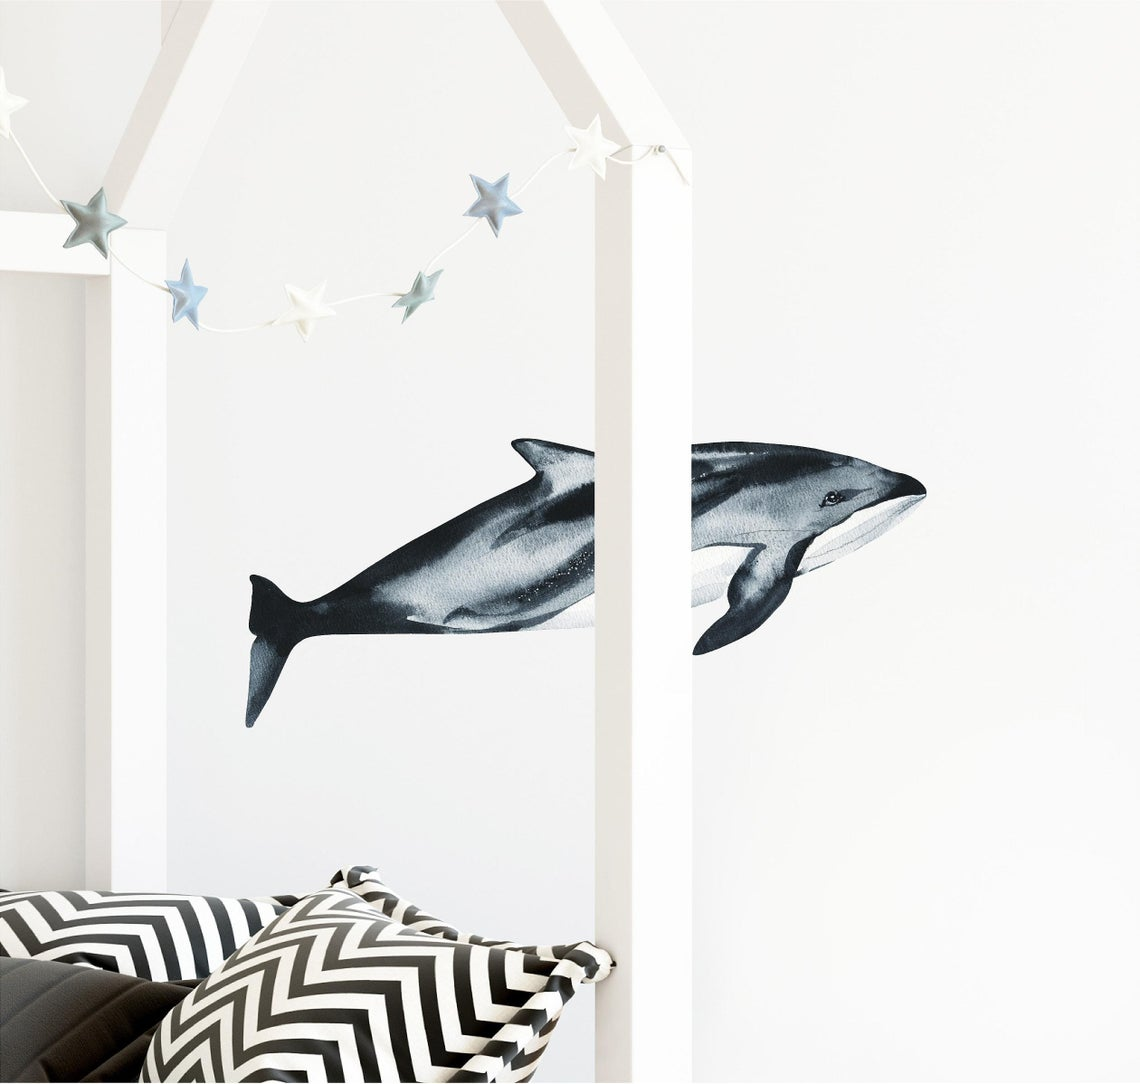 Pacific White-Sided Dolphin Wall Decal Removable Fabric Vinyl Watercolor Ocean Sea Animal Wall Sticker | DecalBaby